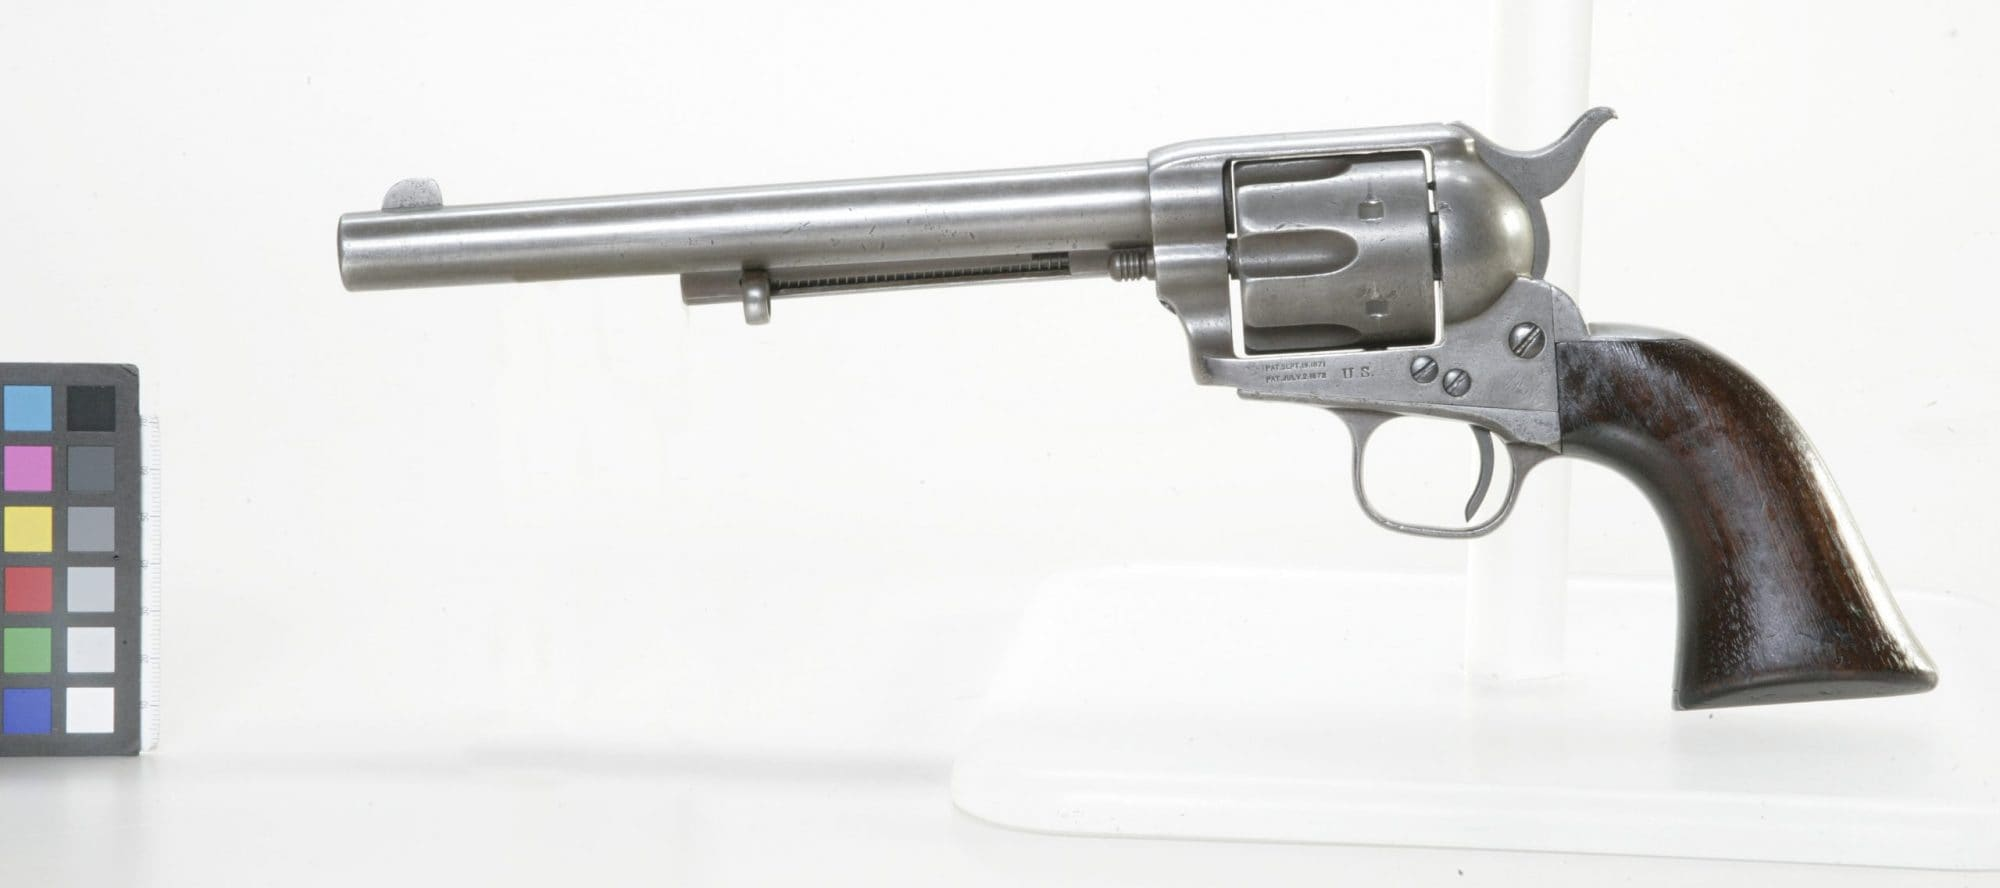 This early Colt Single Action Army, SN 5405, has an 1874 production date and U.S. military stamps. It was turned over by Sitting Bull to the Canadians and is now in the Canadian War Museum (Photo: CWM)